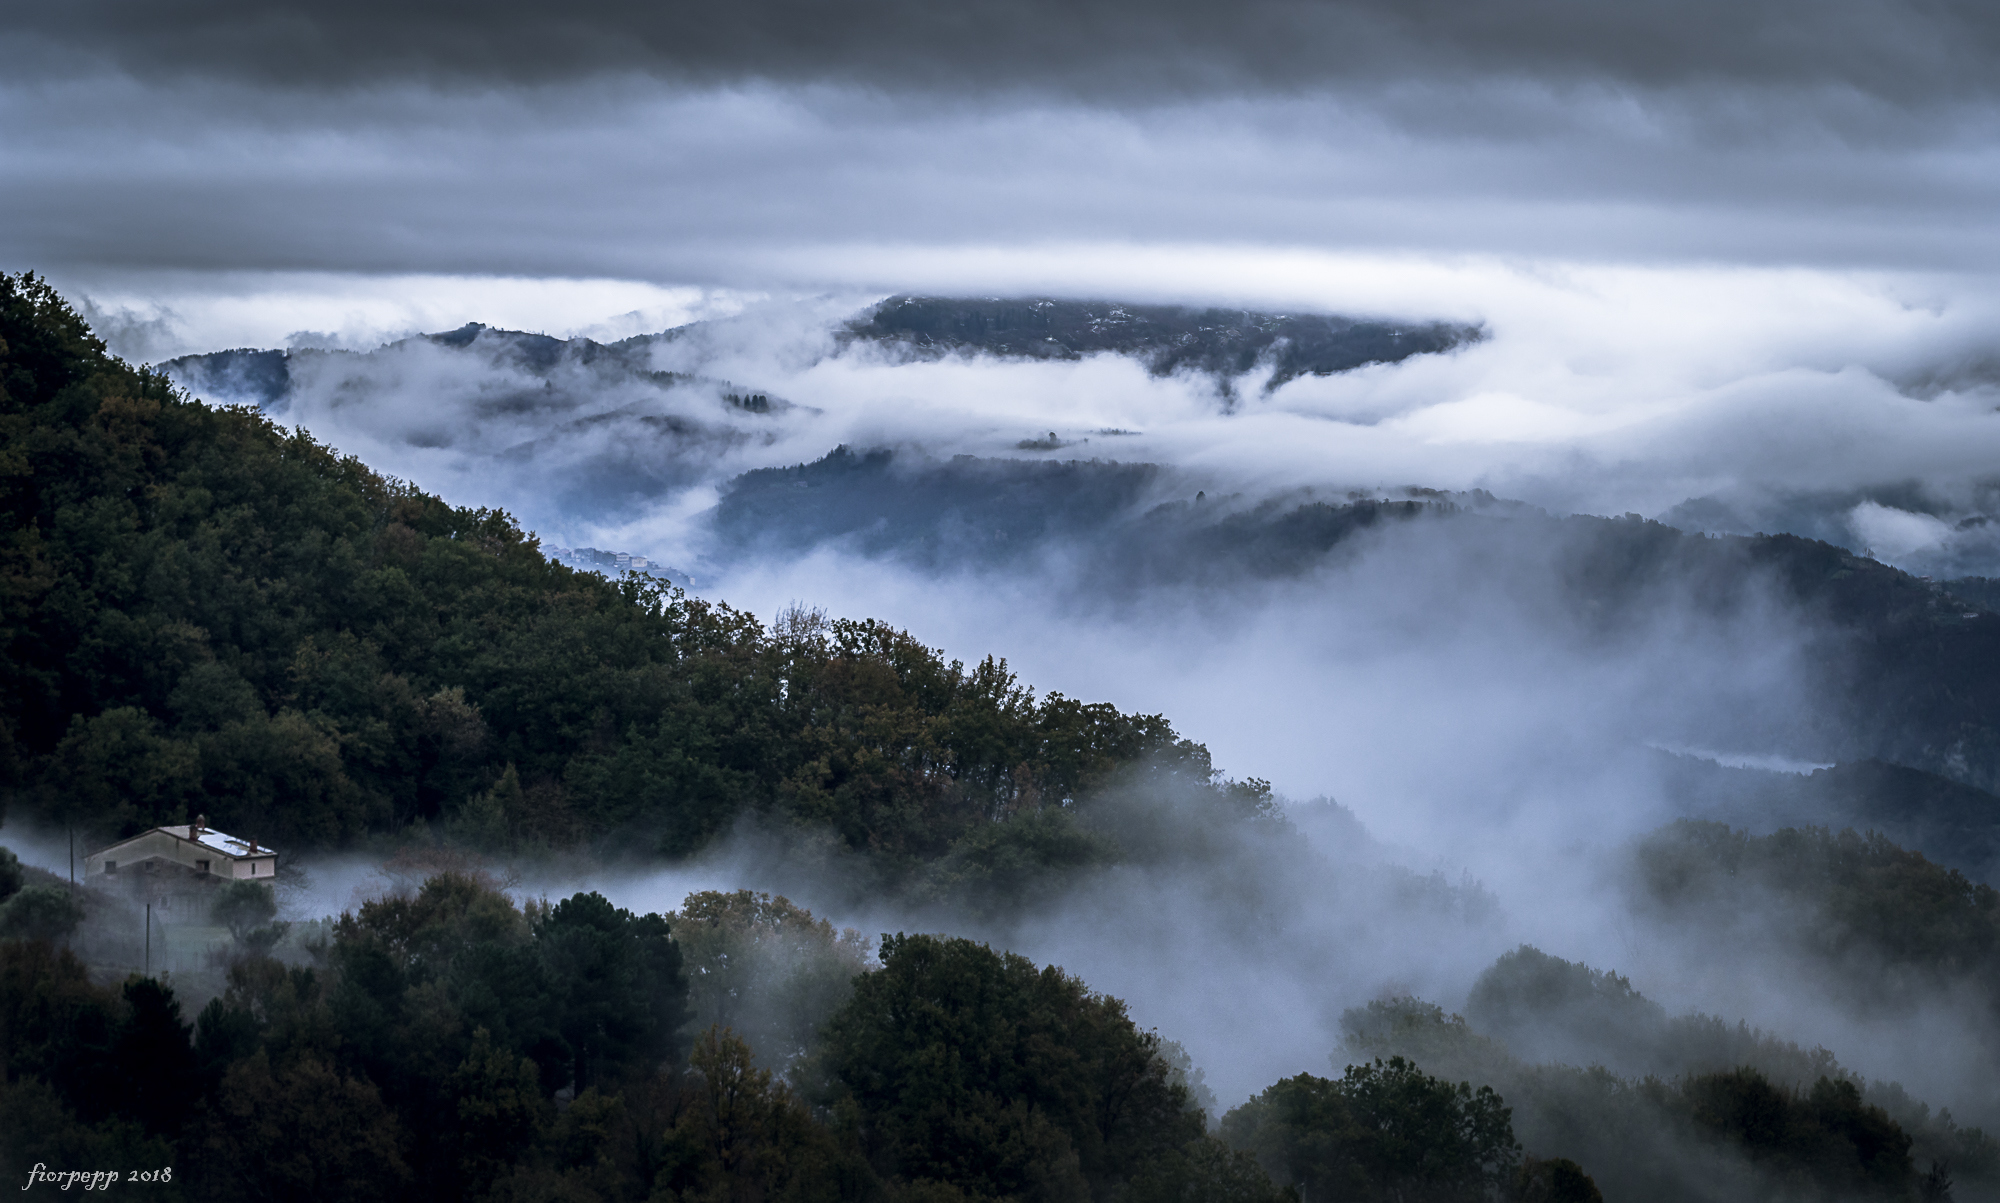 The fog to the bristling hills.......